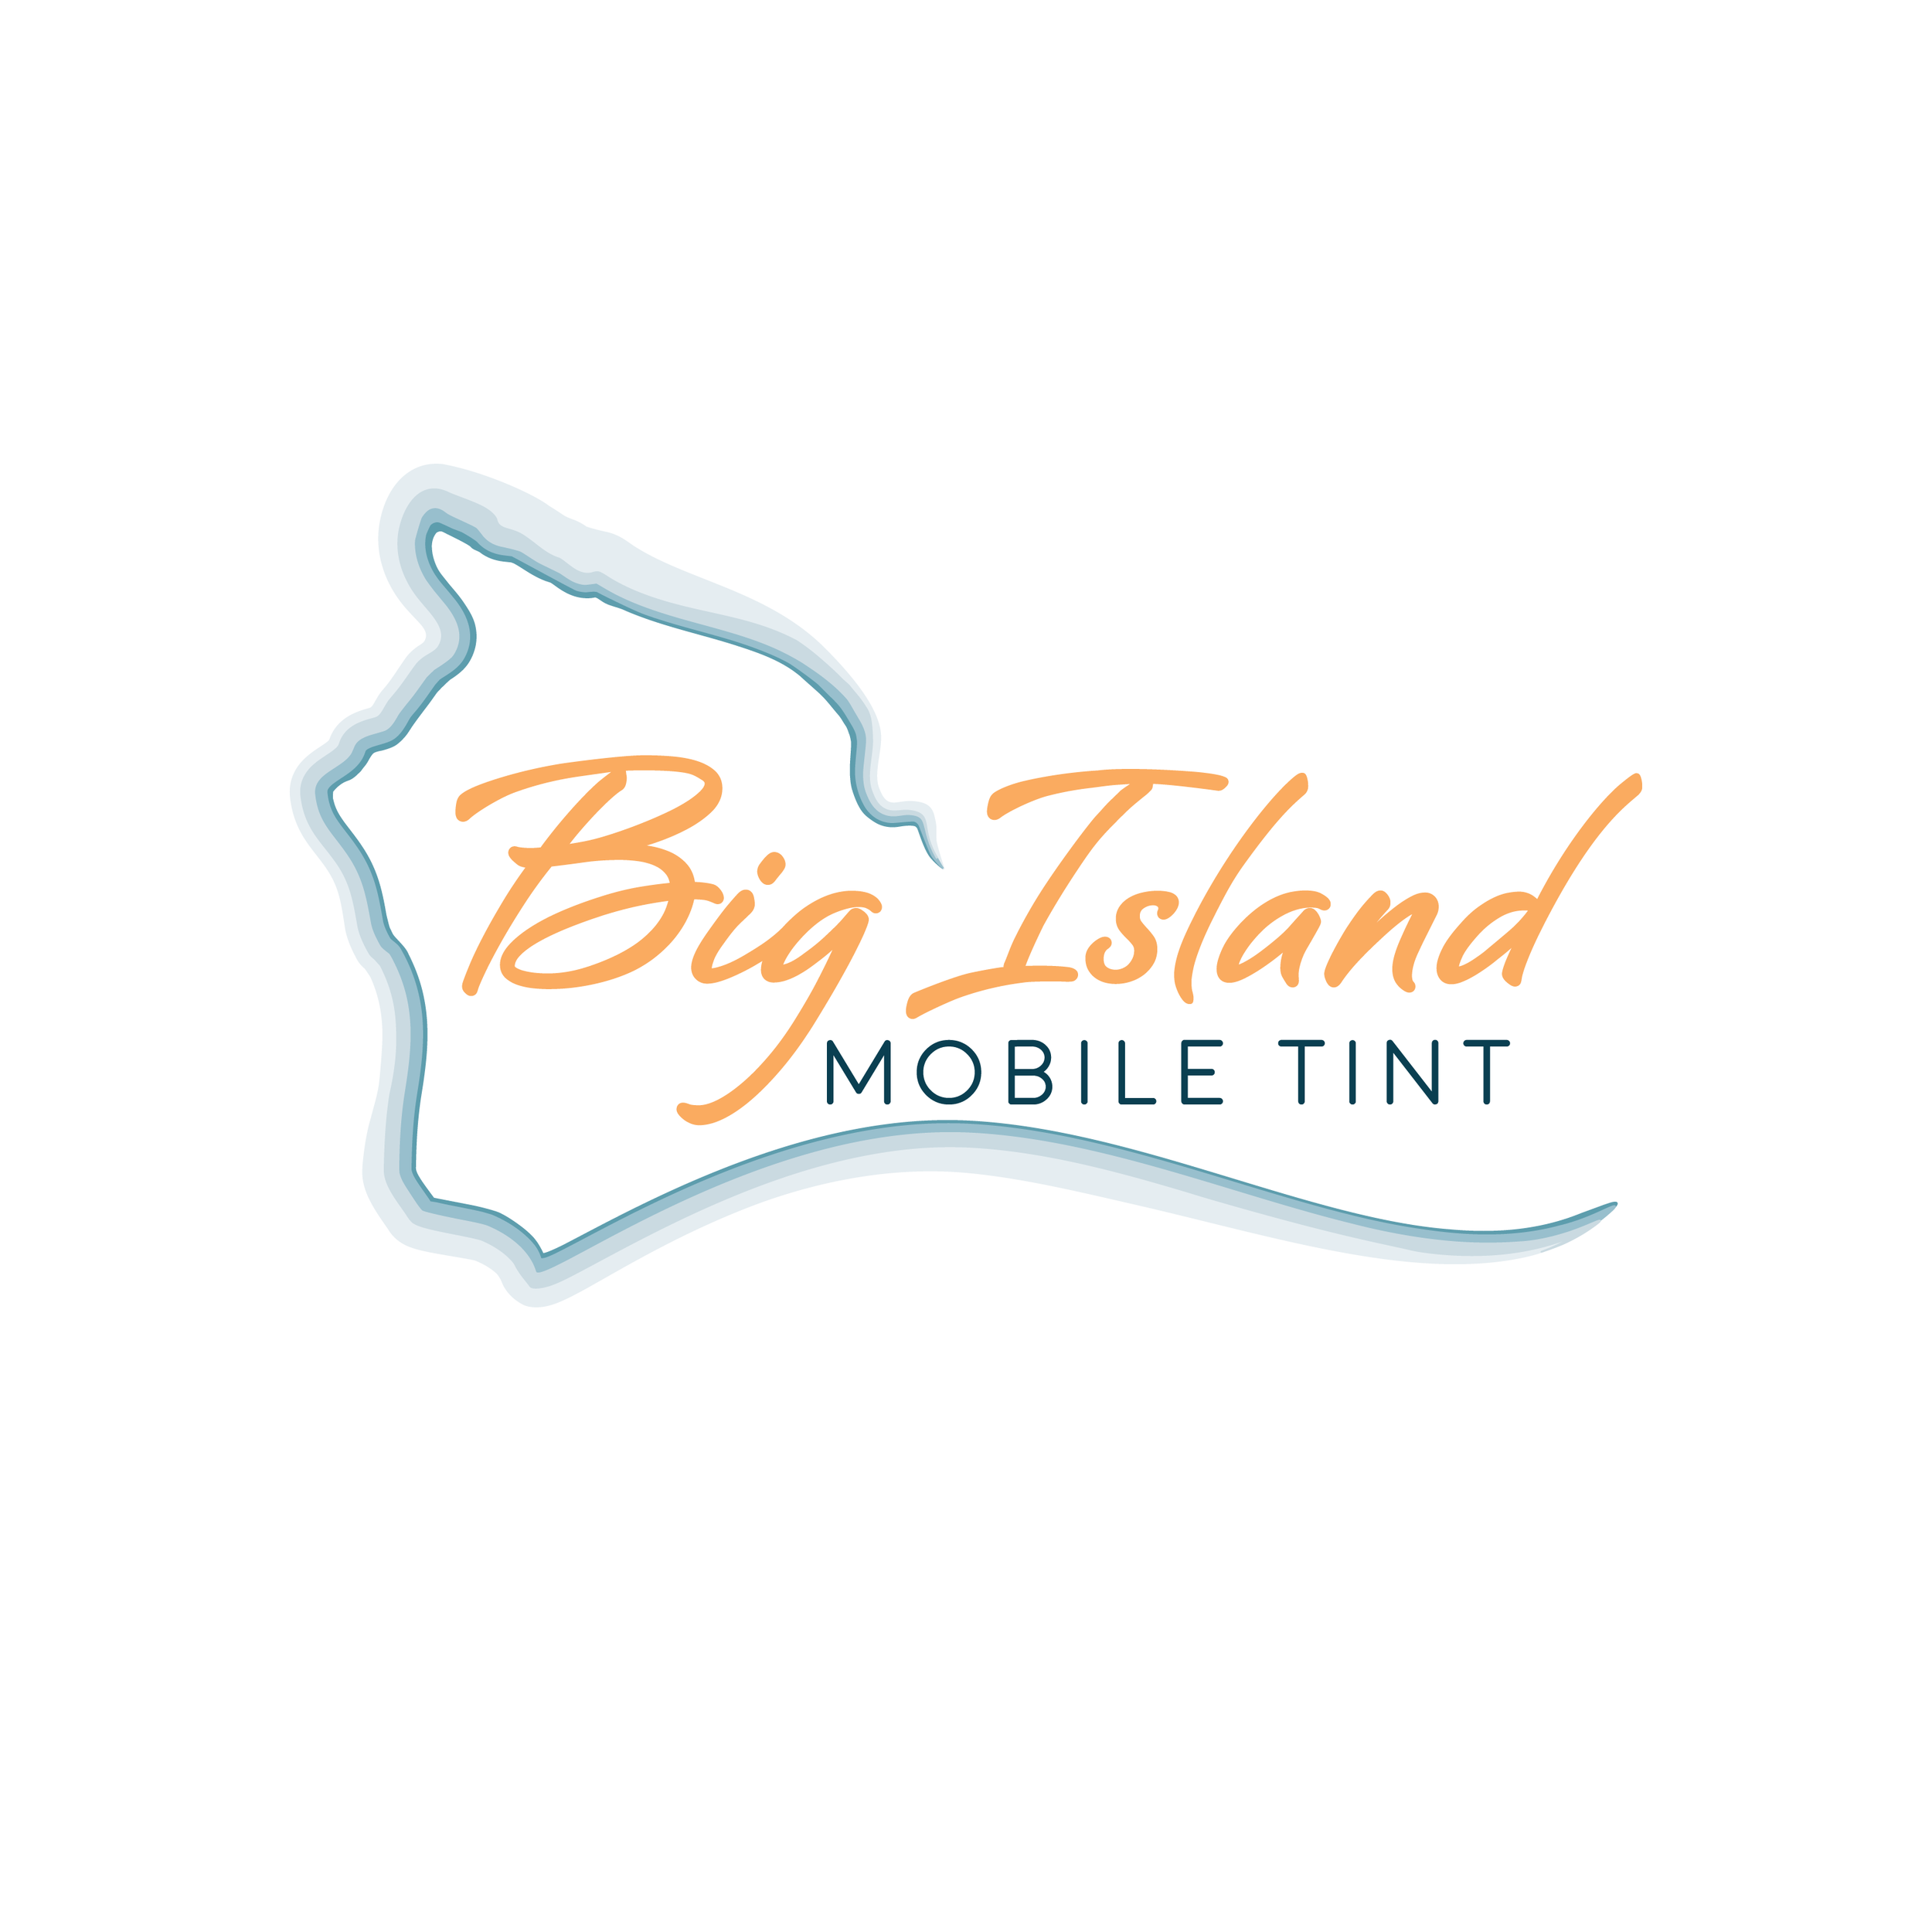 Big Island Mobile Tint Logo Design